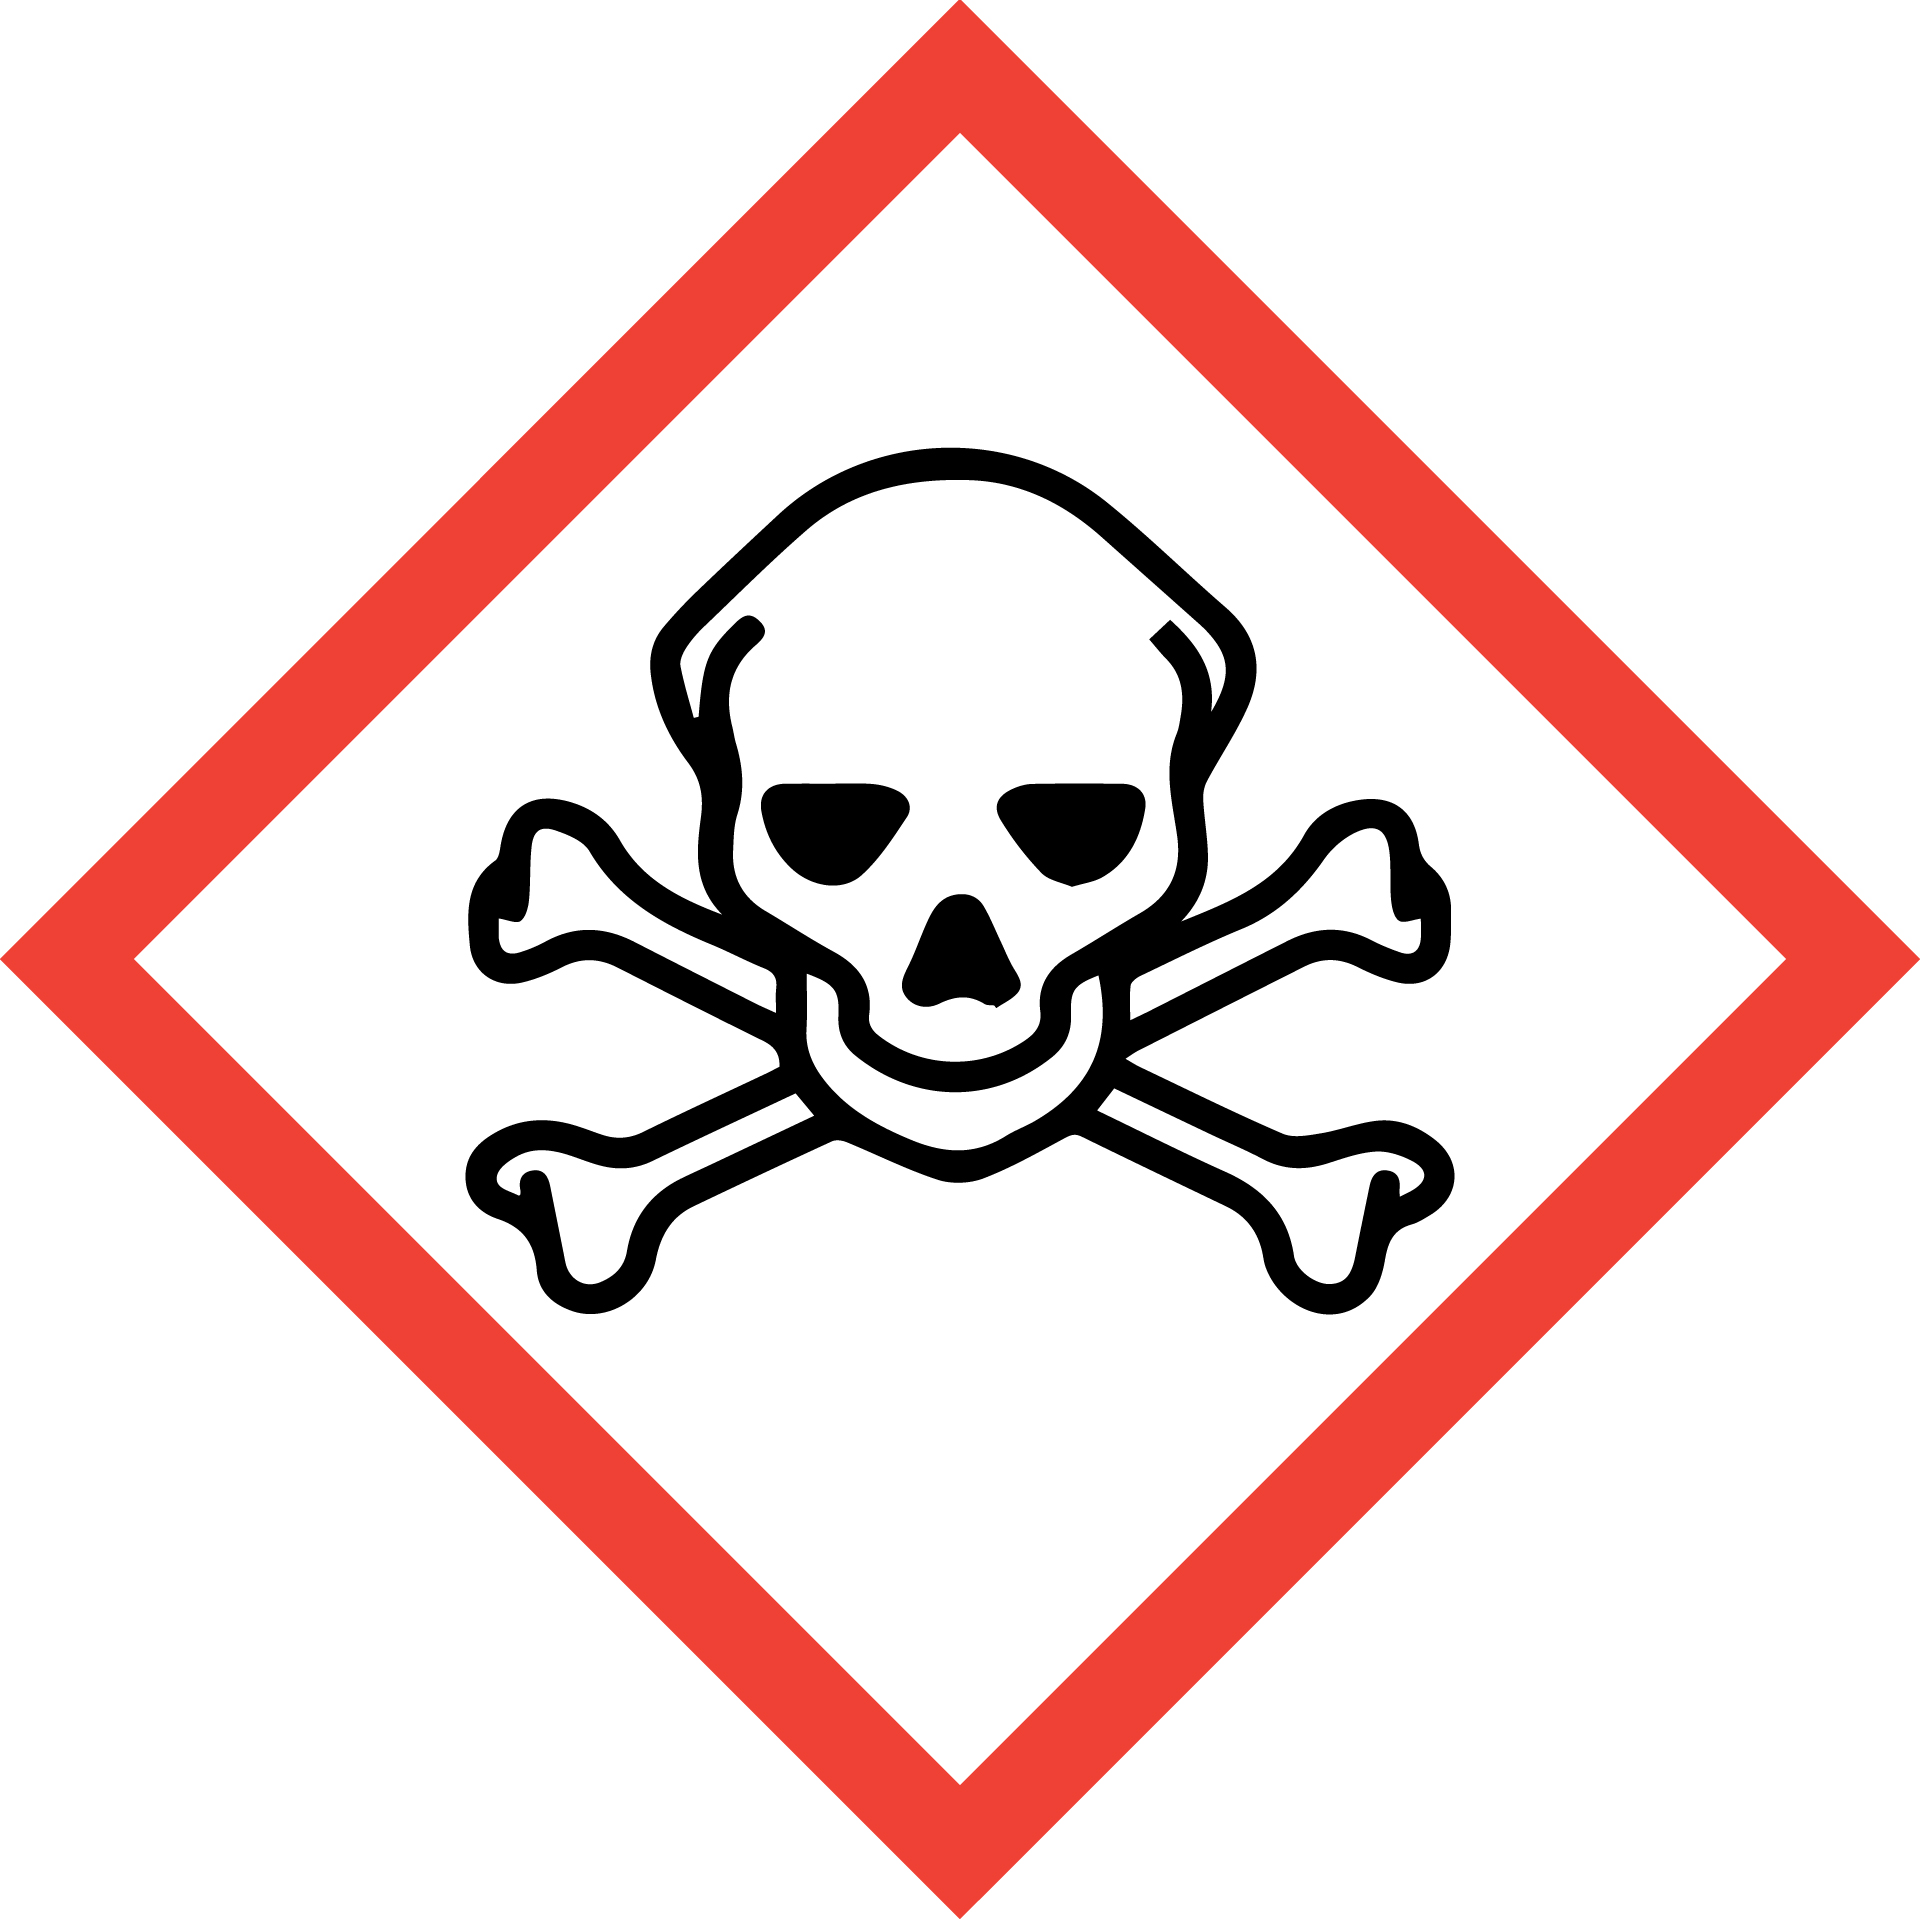 Chemical Symbols Safety - ClipArt Best